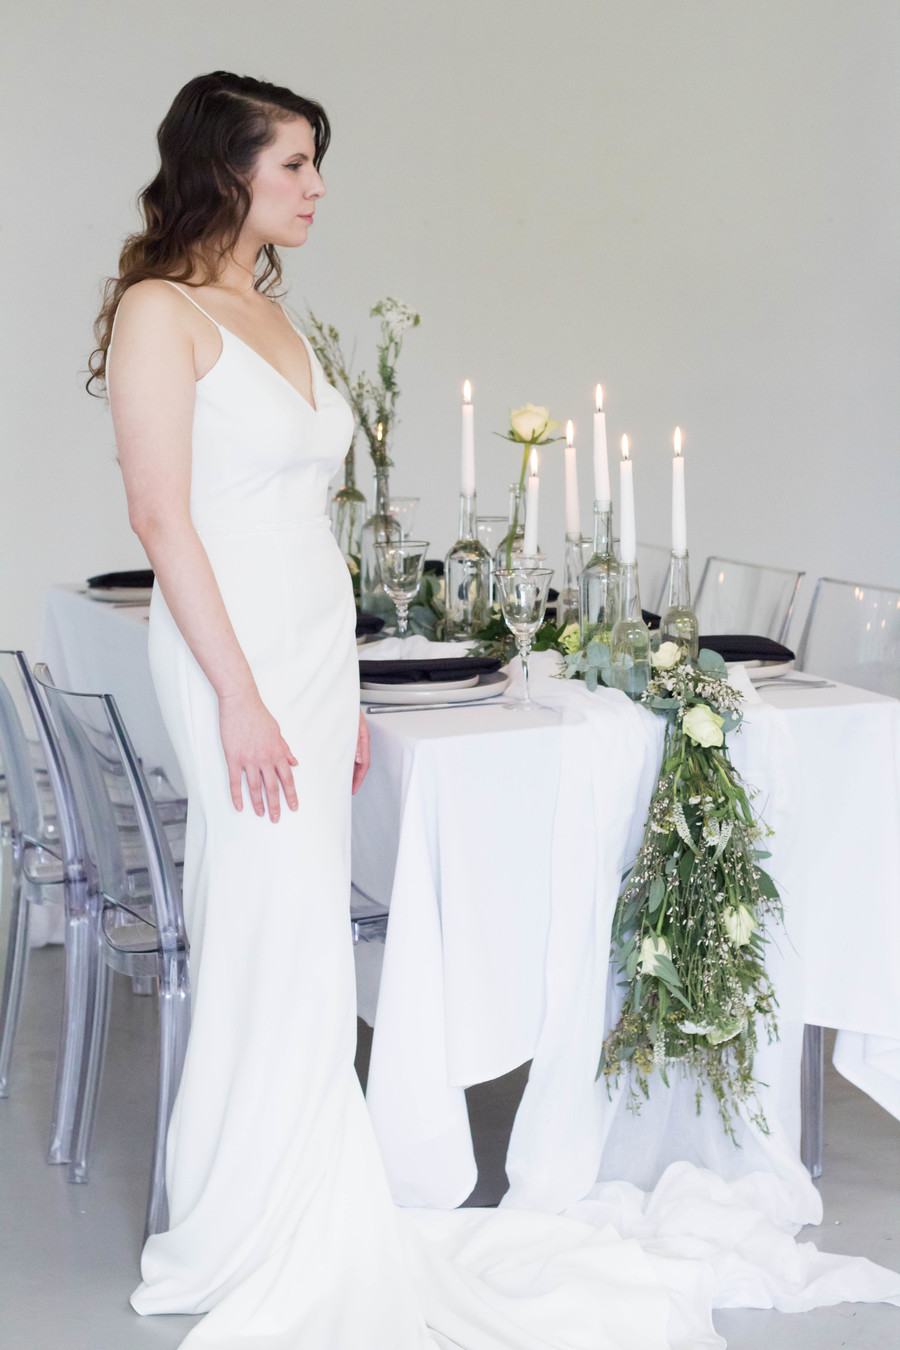 Sleek and modern wedding inspiration from Wakefield with Lam D Peretti Photography (18)